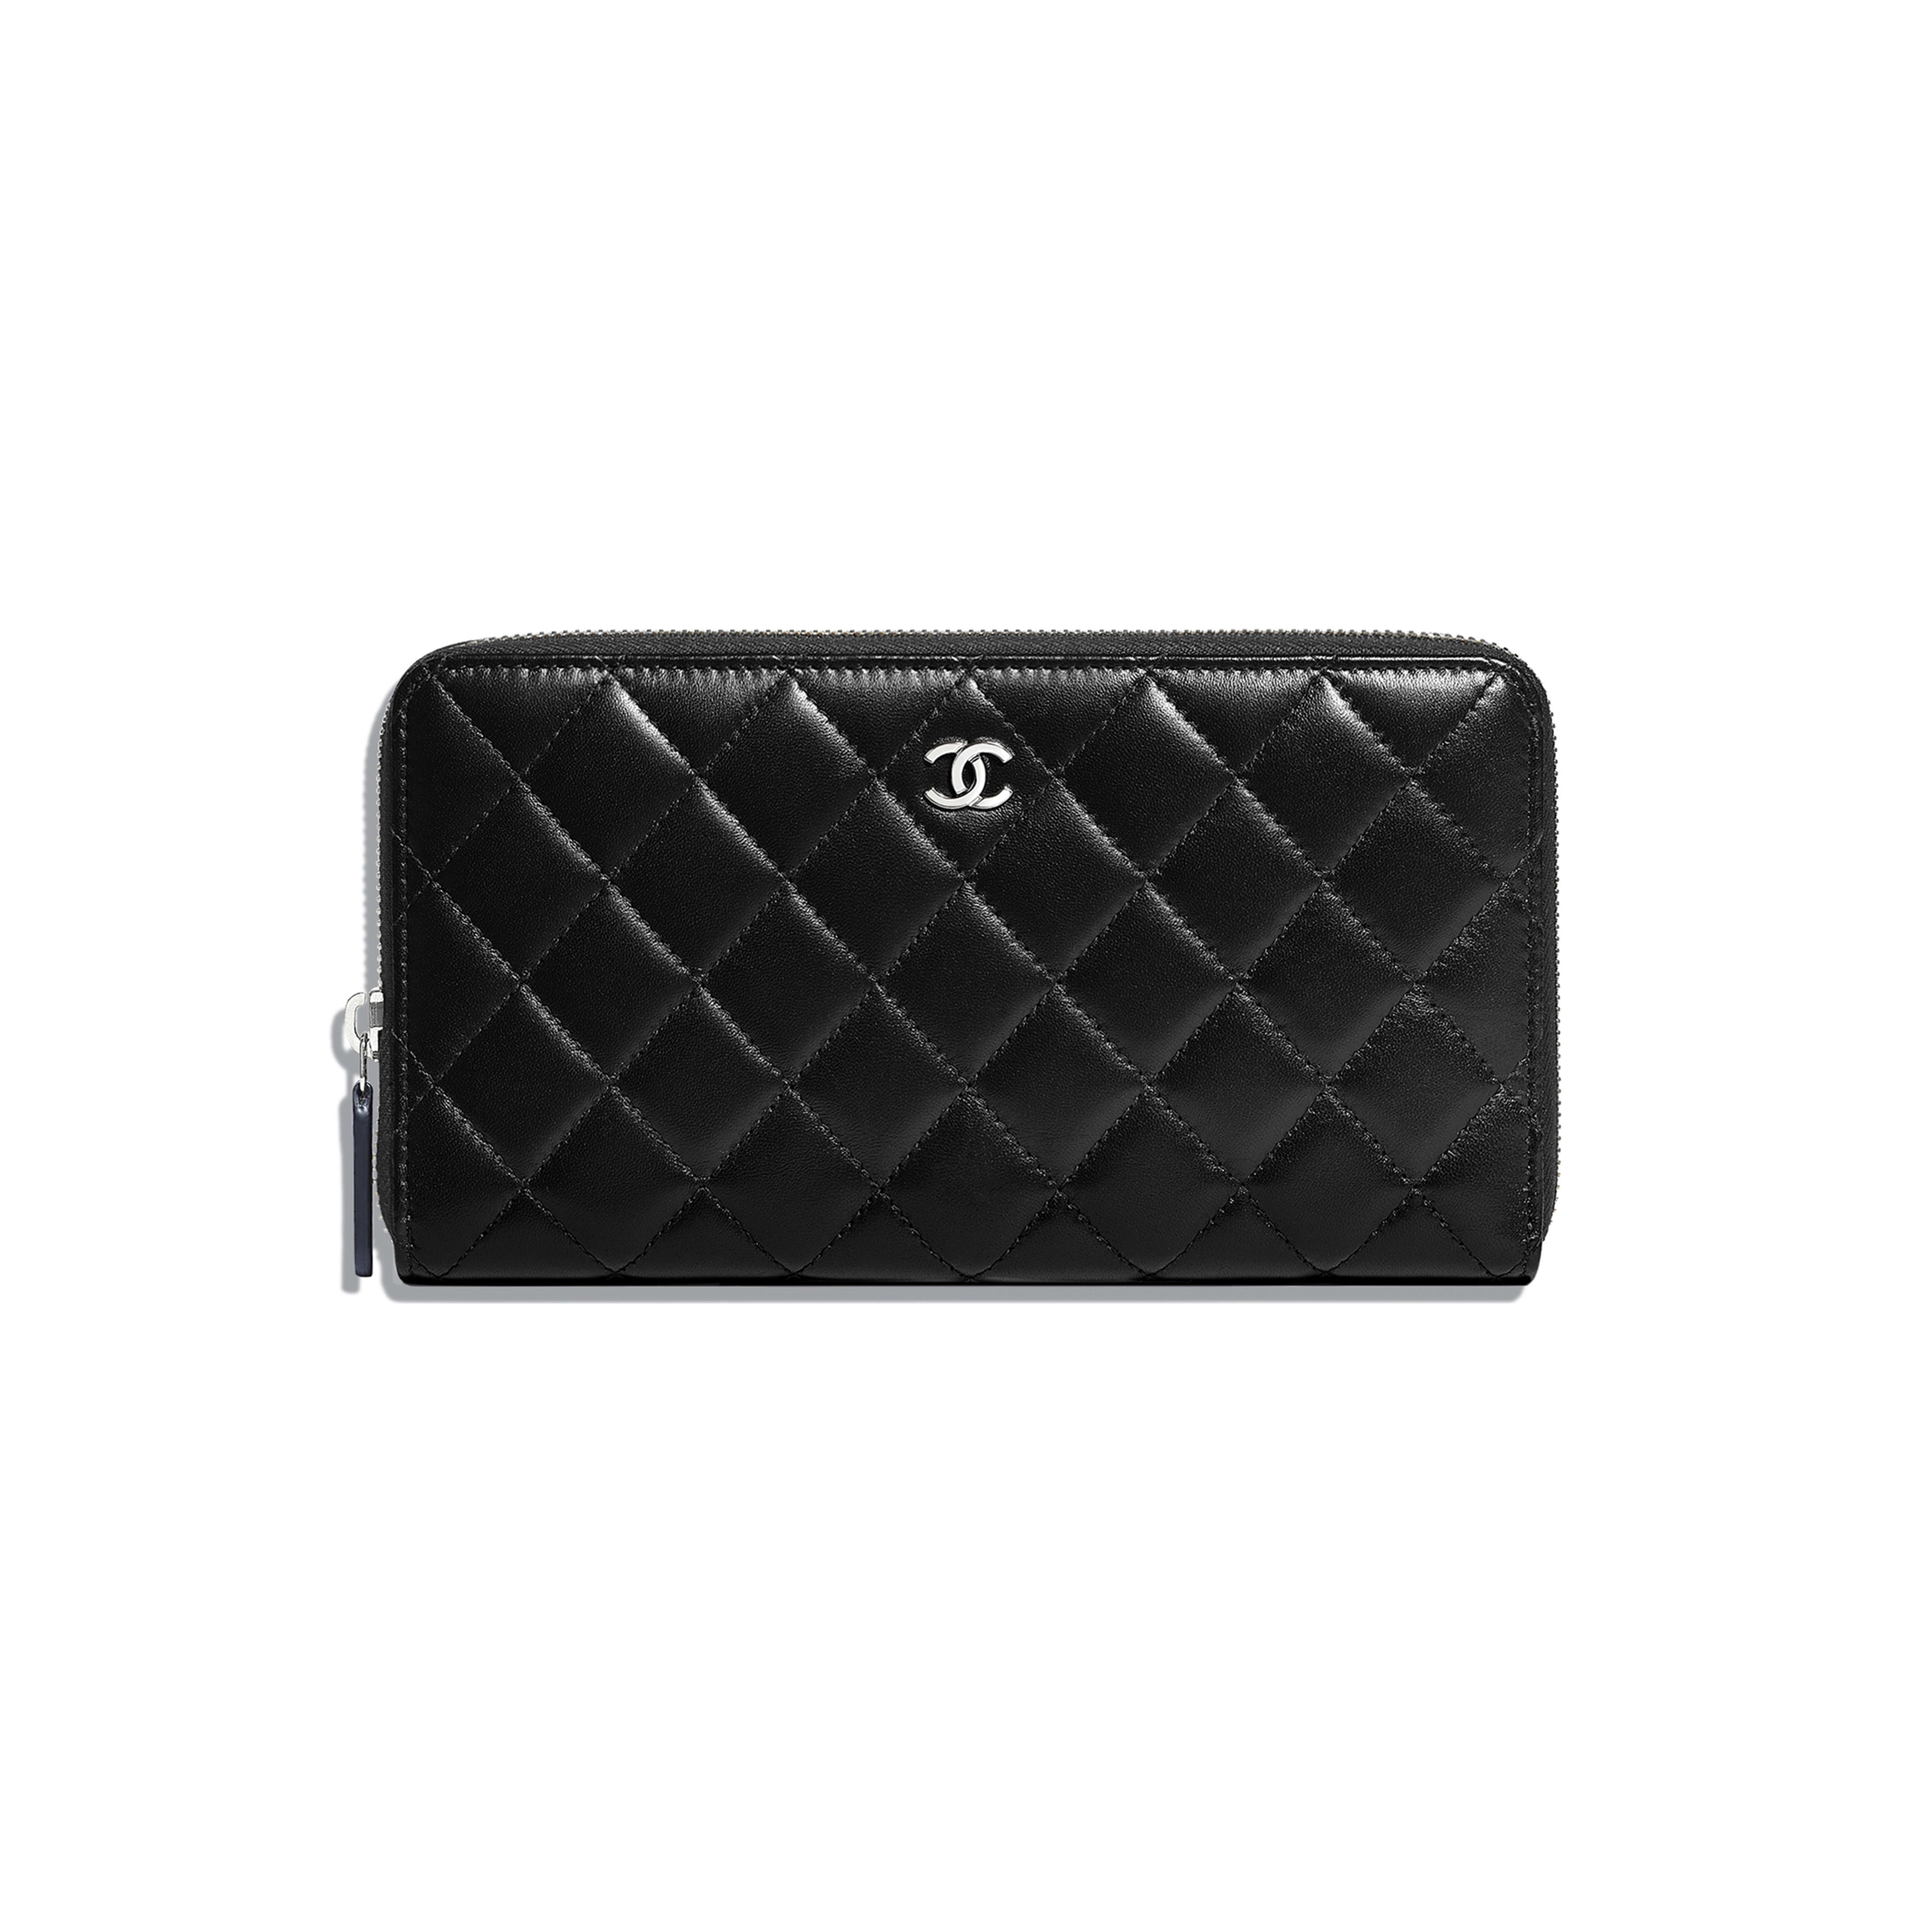 Classic Large Zipped Wallet - Black - Lambskin - Default view - see full sized version